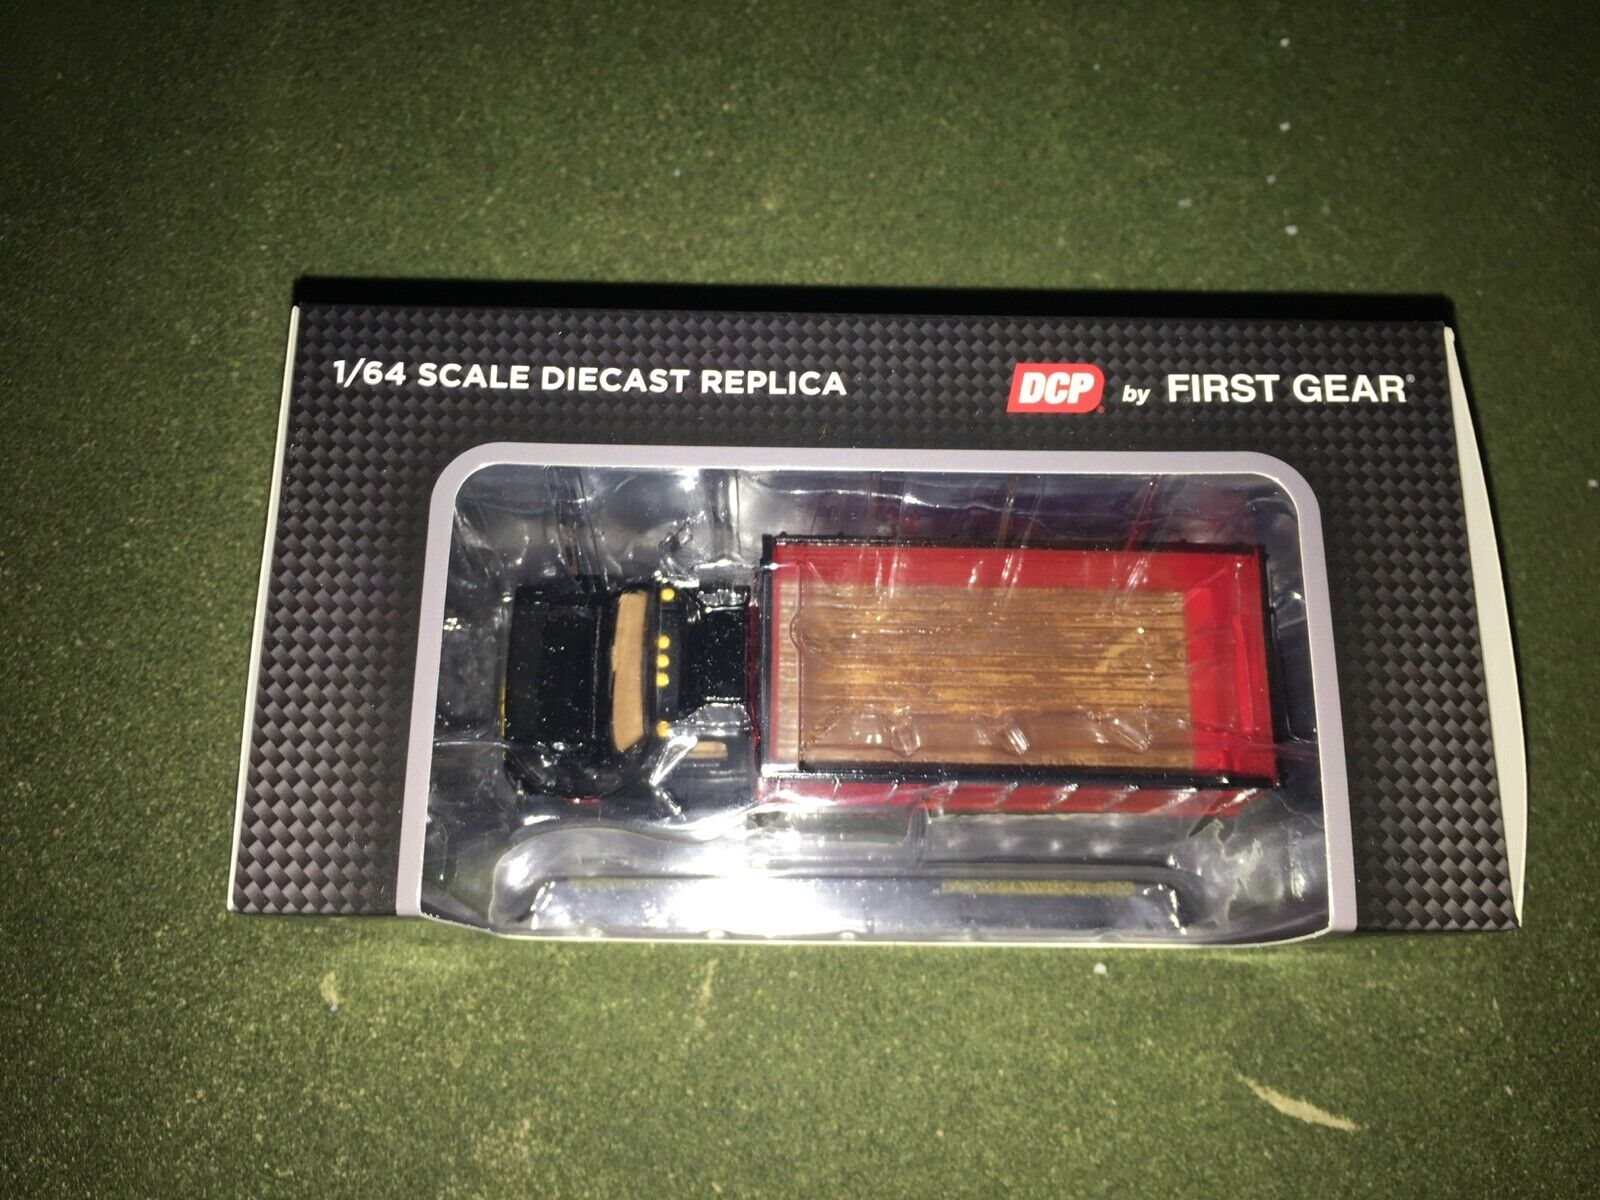 1/64 DCP BY FIRST GEAR BLACK/RED CHEVY C65 TANDEM AXLE GRAIN TRUCK 10